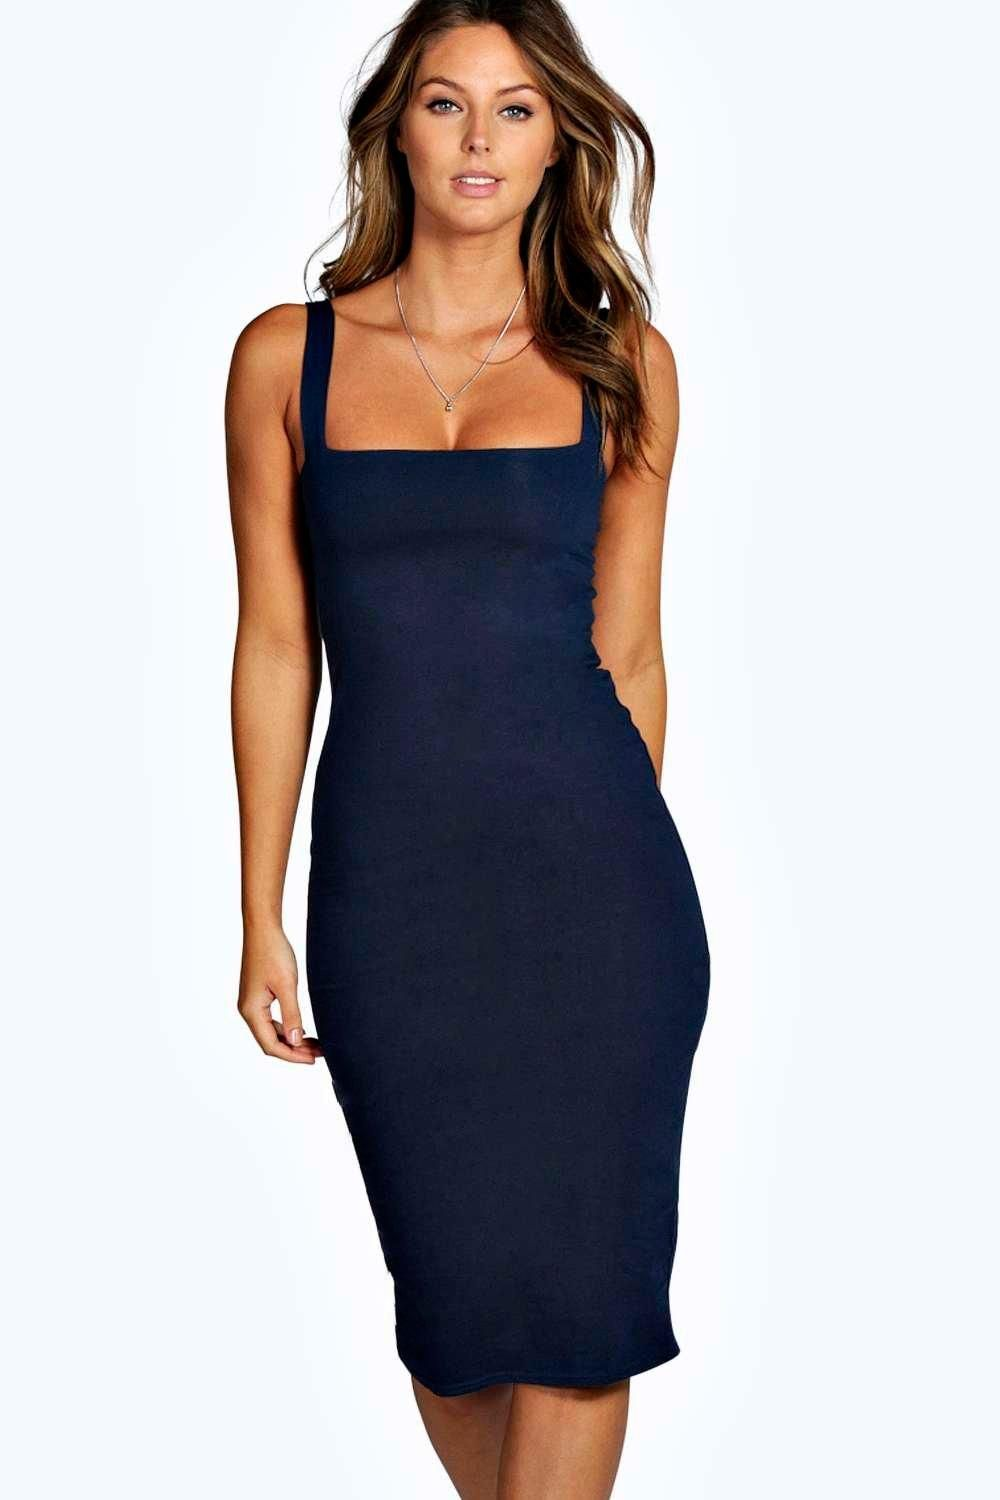 205d9547f4 Sweetheart Off Shoulder Bodycon Midi Dress | cute and sexy style | Dresses,  Bodycon dress, Bodycon fashion